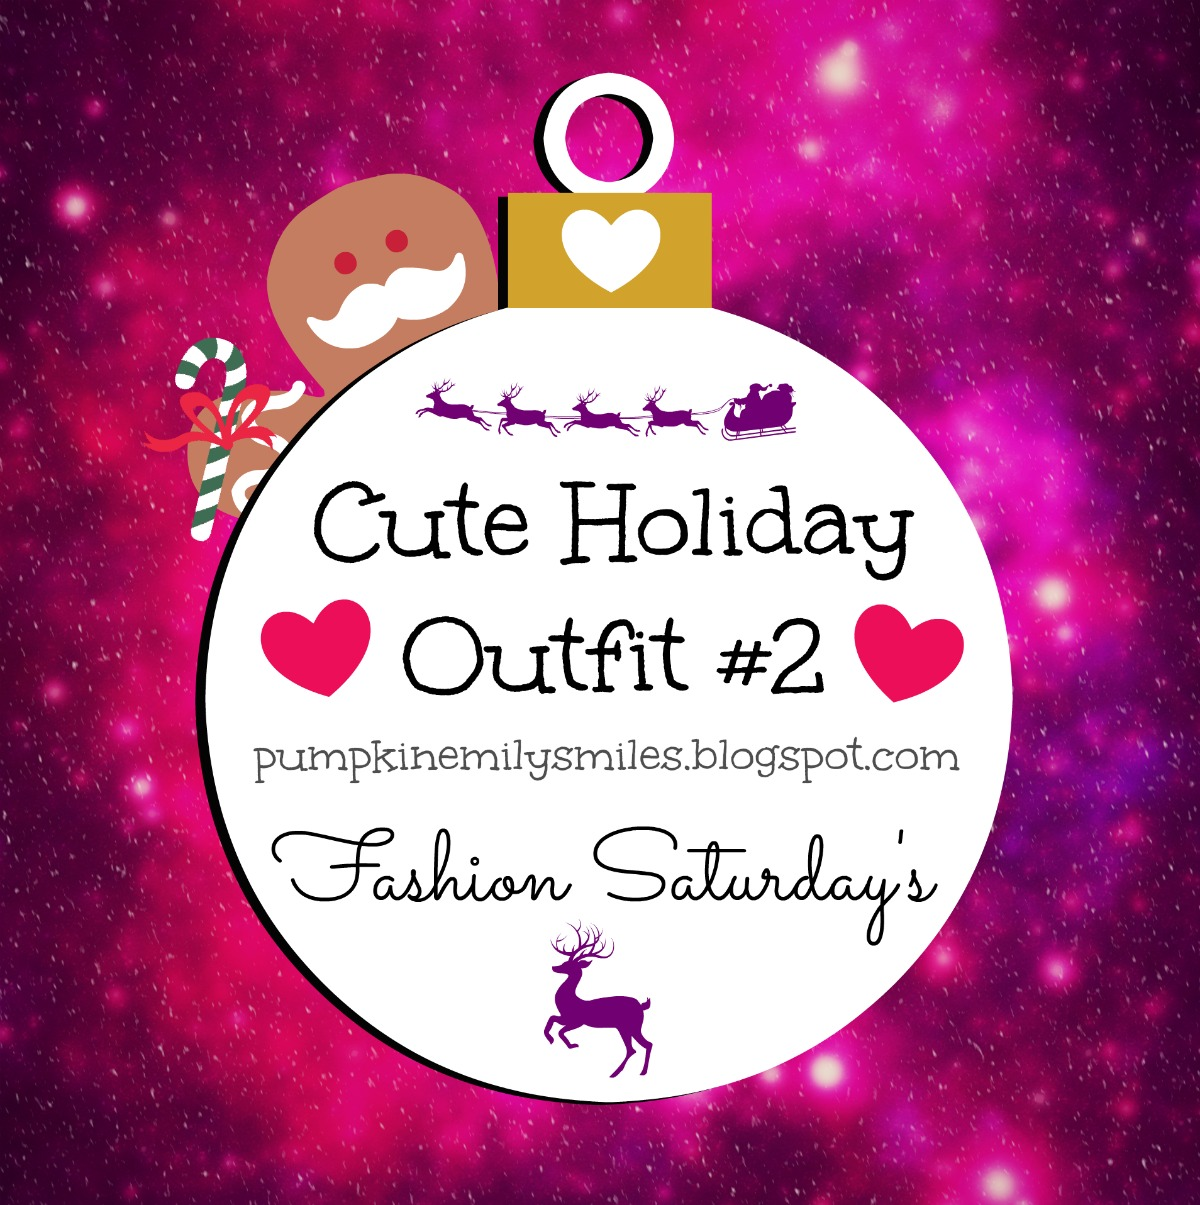 Cute Holiday Outfit #2 Fashion Saturday's